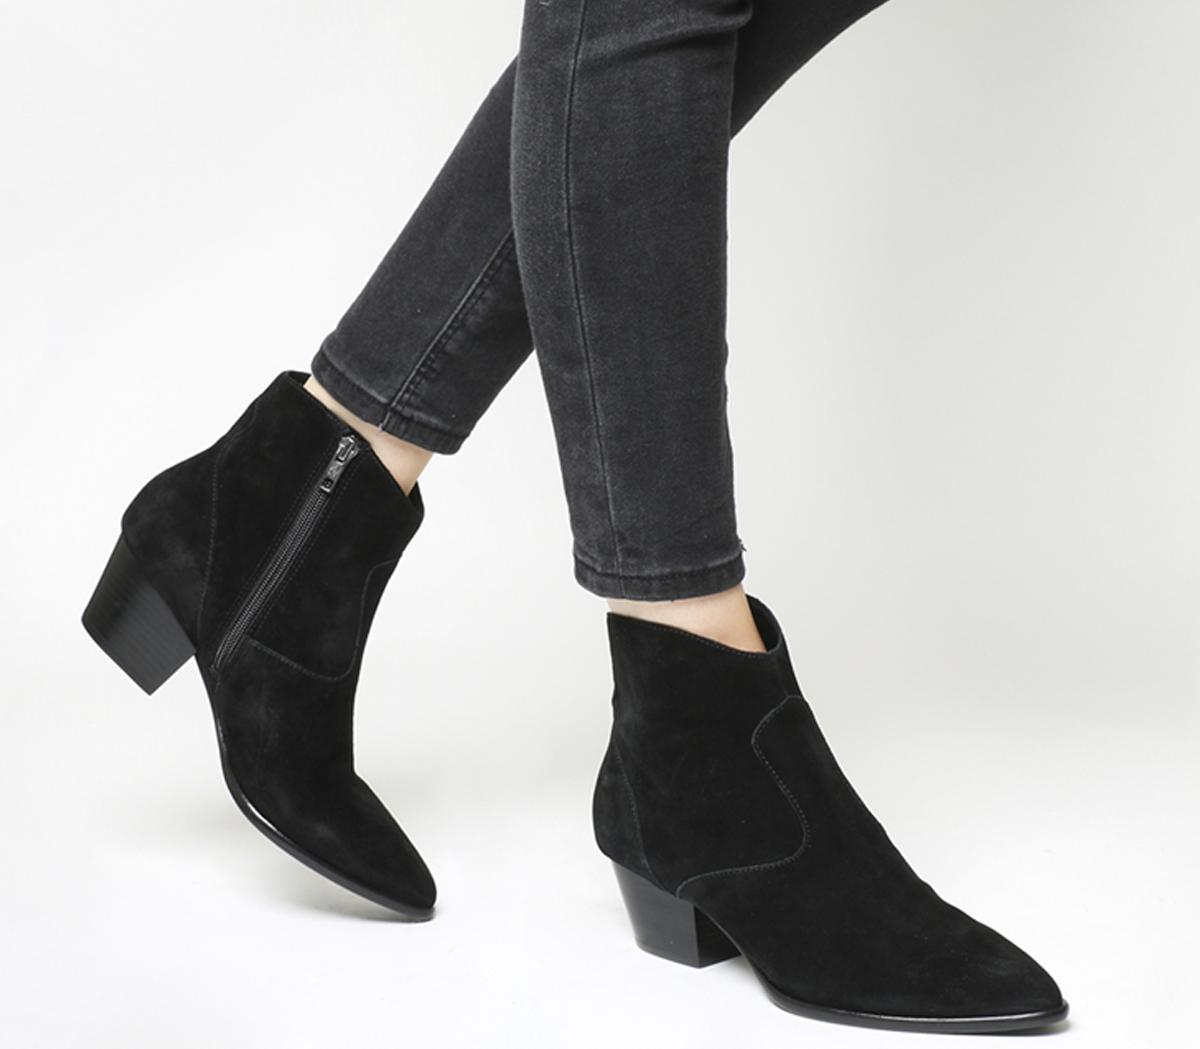 coupon codes the sale of shoes 100% quality Heidi Bis Ankle Boots